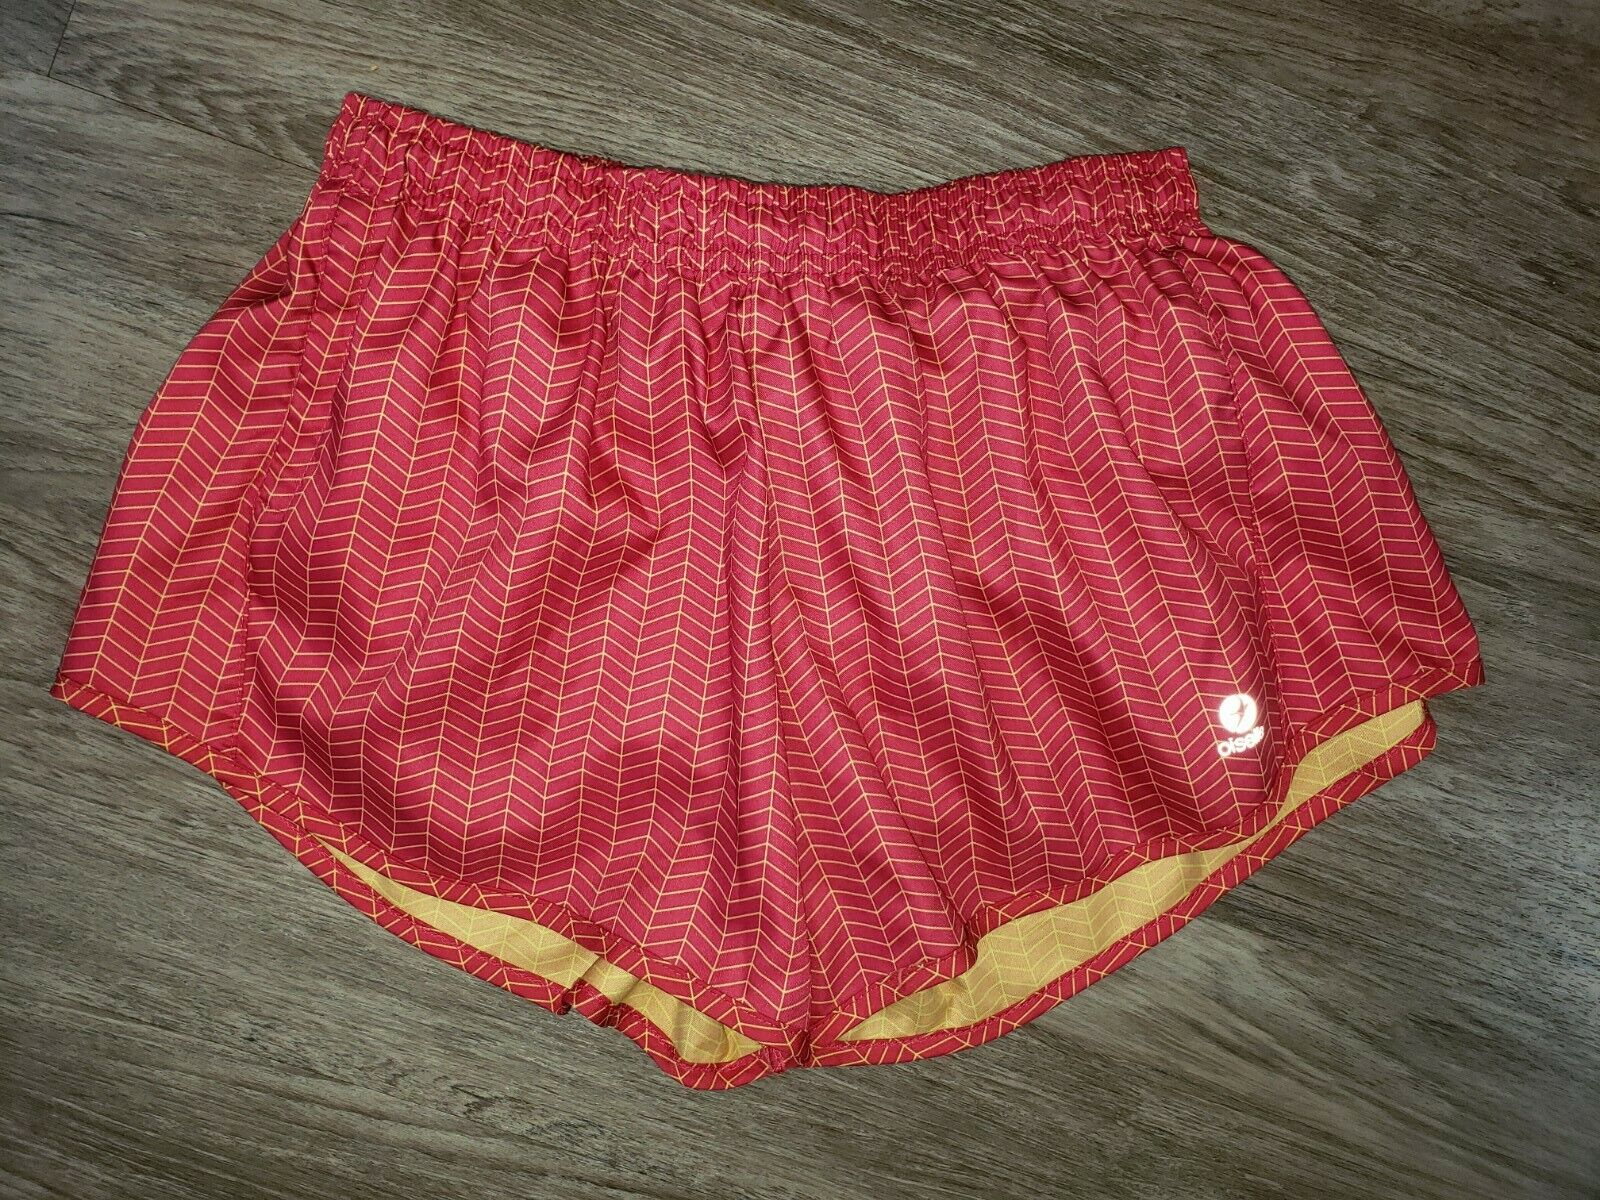 Oiselle Red Yellow Chevron Striped Running Shorts Built In Underwear Athletic MD